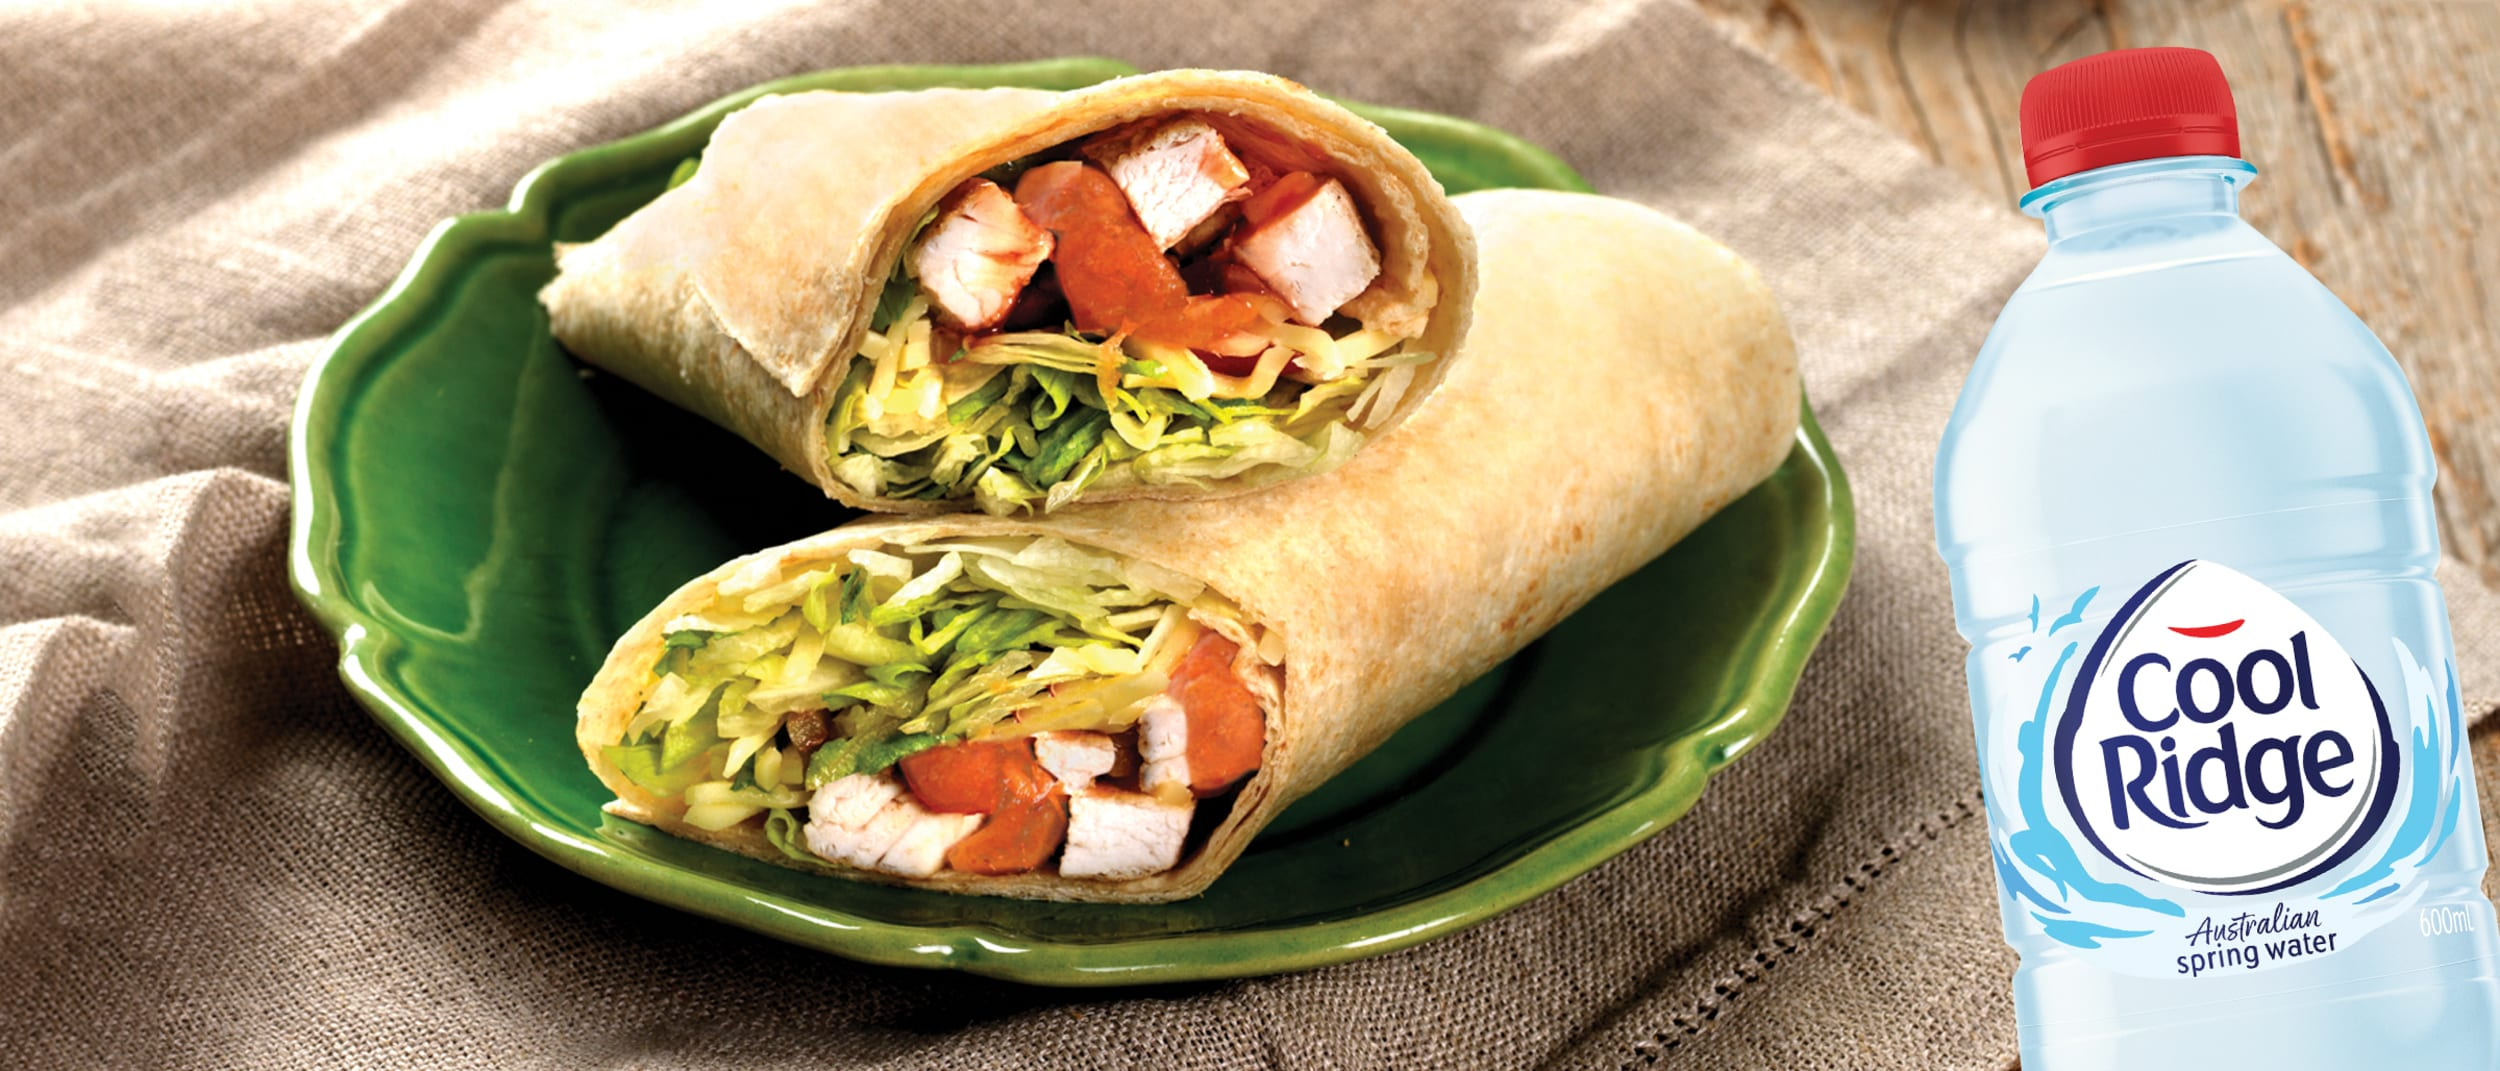 Le Wrap: peri peri chicken wrap and drink for just $11.90